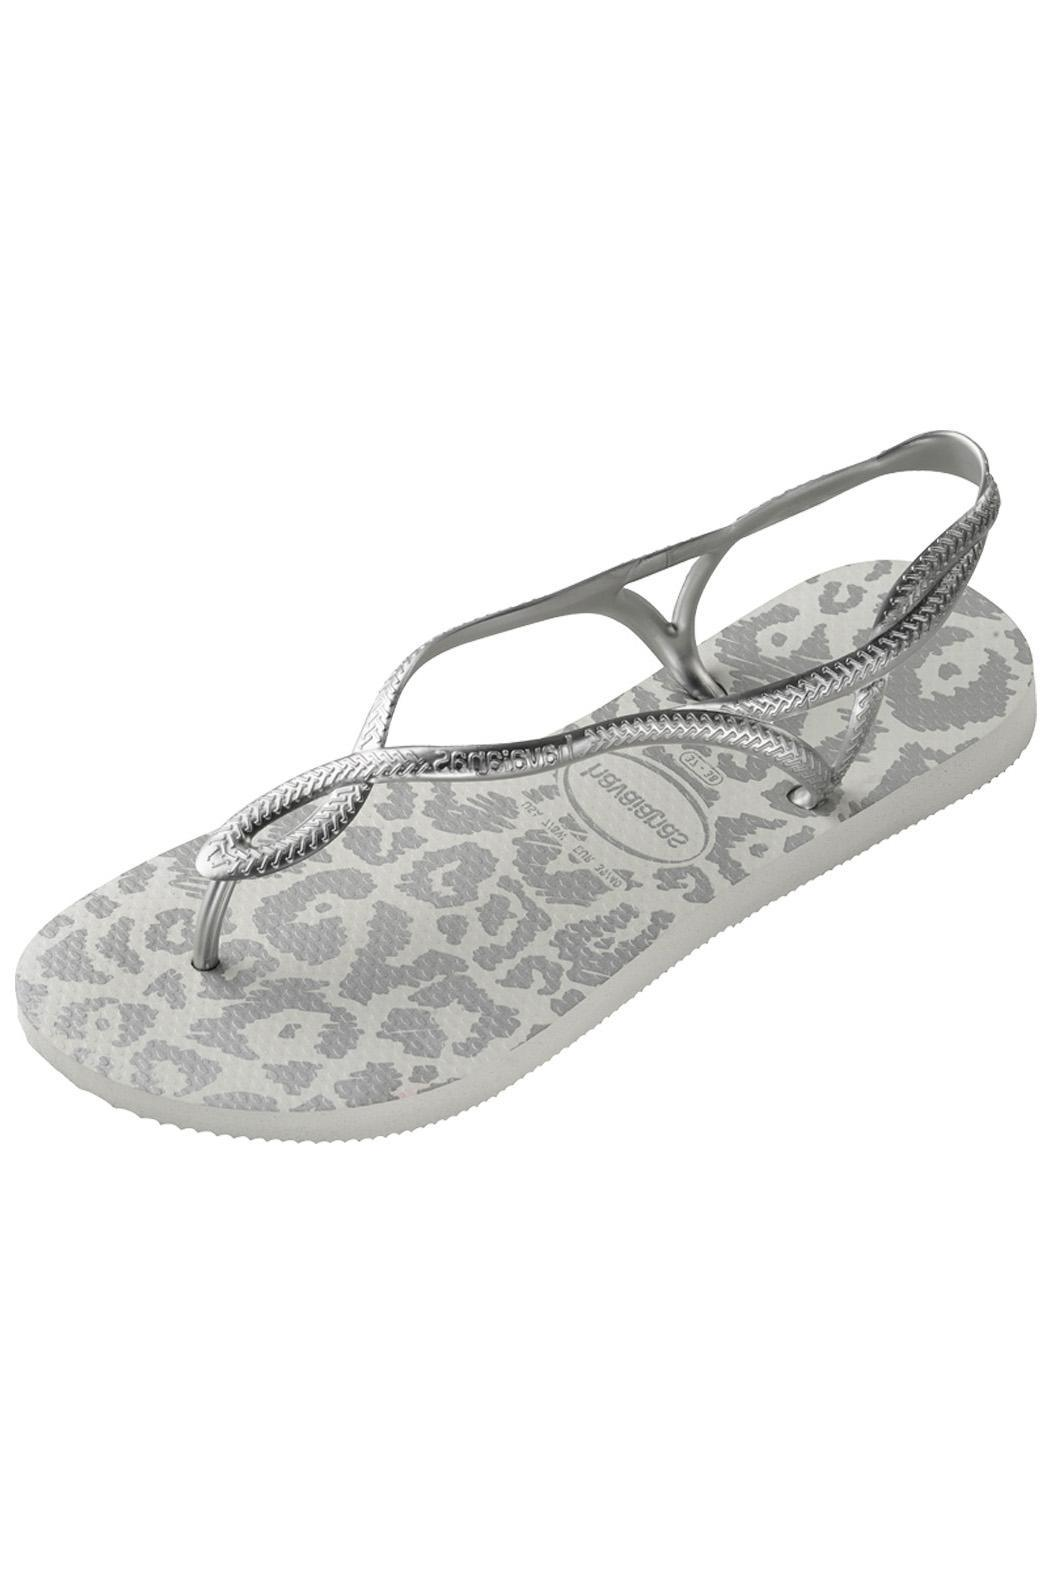 541d161d8862d4 Havaianas Luna Animal Sandal from Nebraska by Post   Nickel — Shoptiques